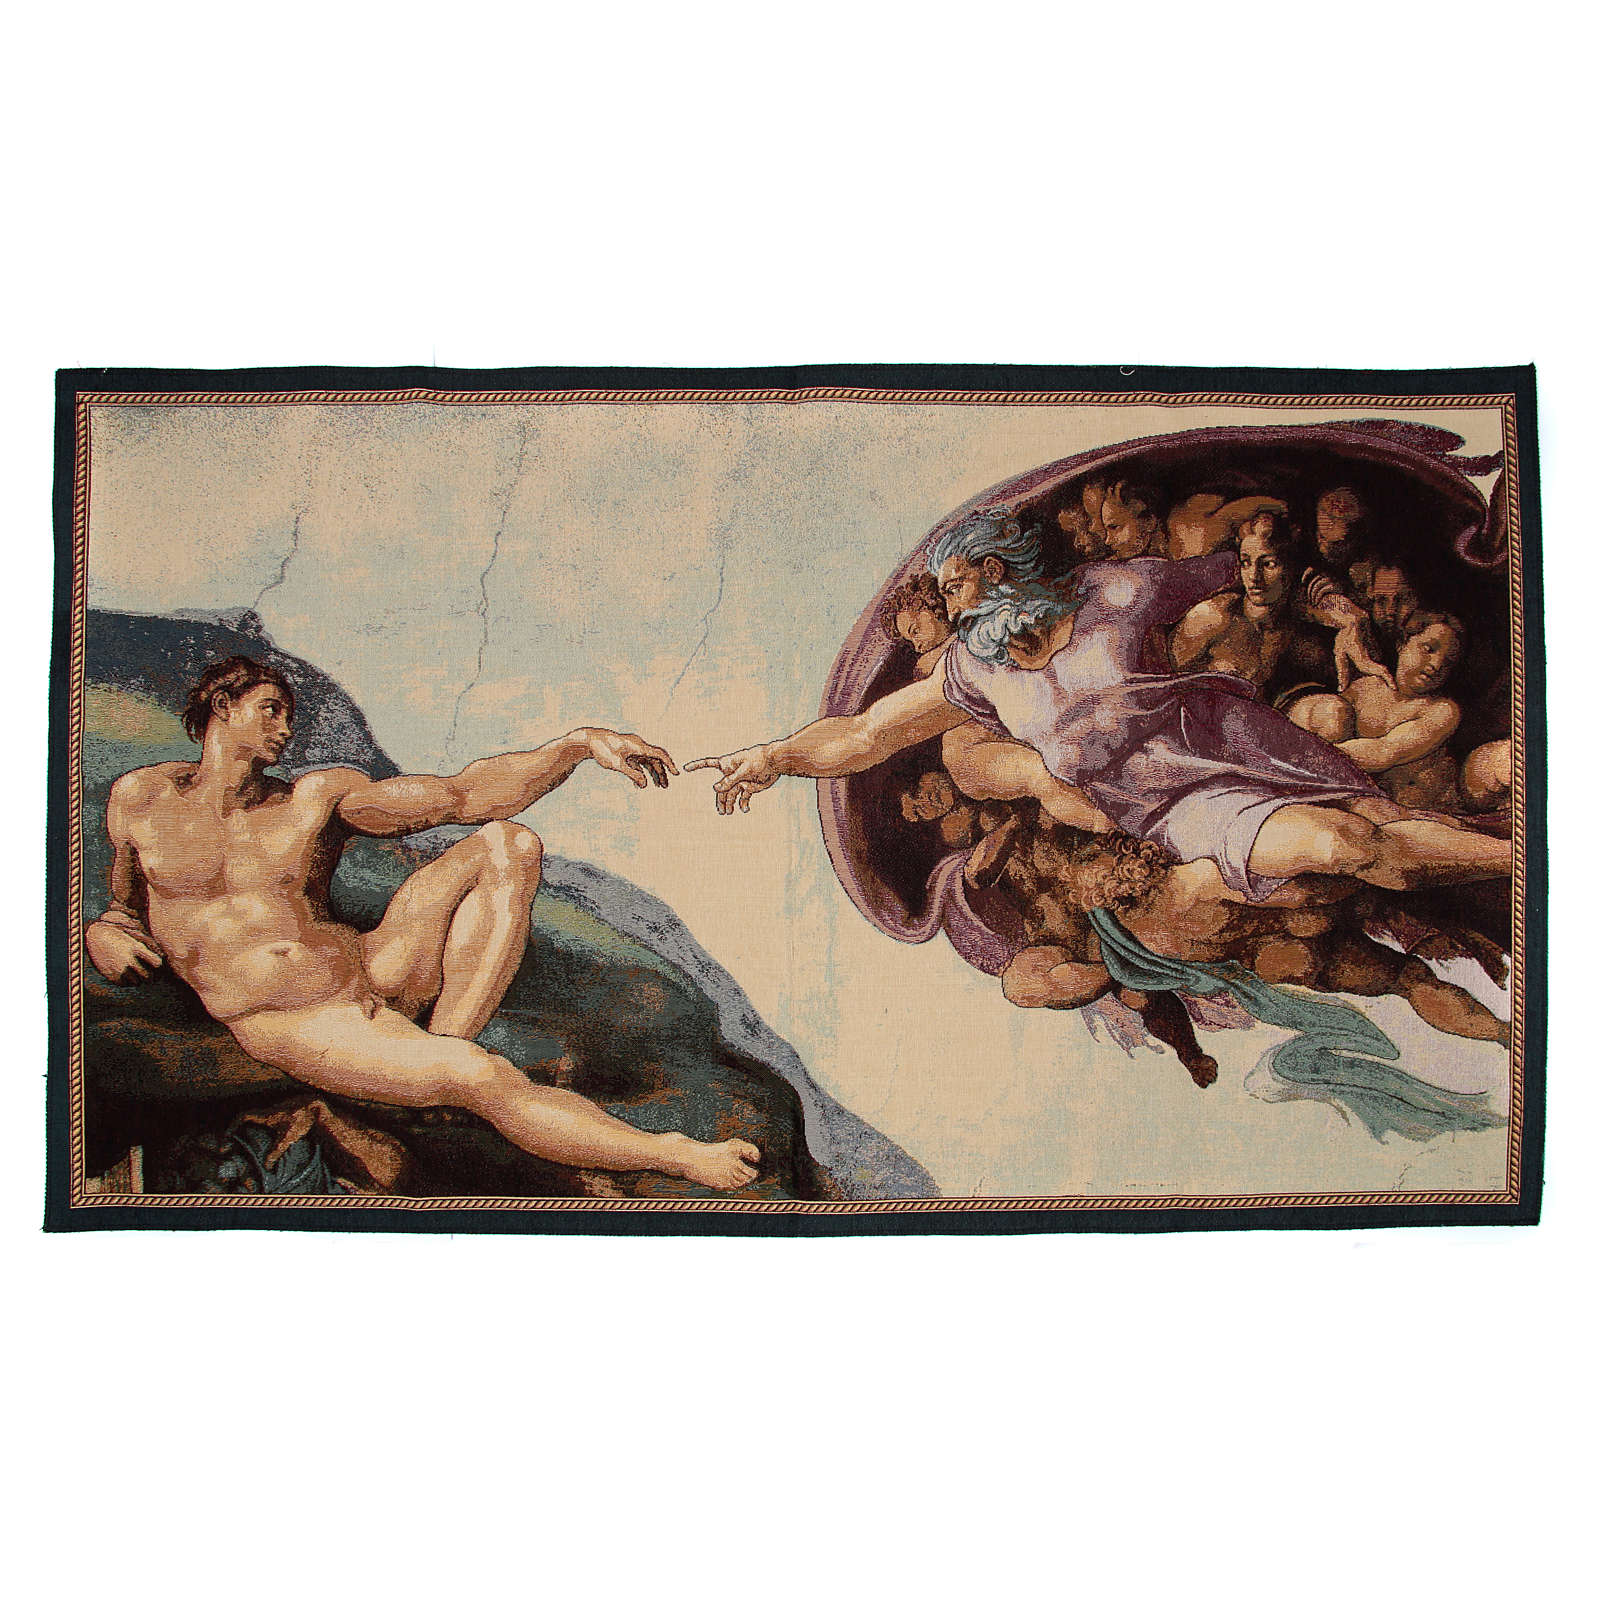 Tapestry The Creation of Adam by Michelangelo, 65x125 cm 3